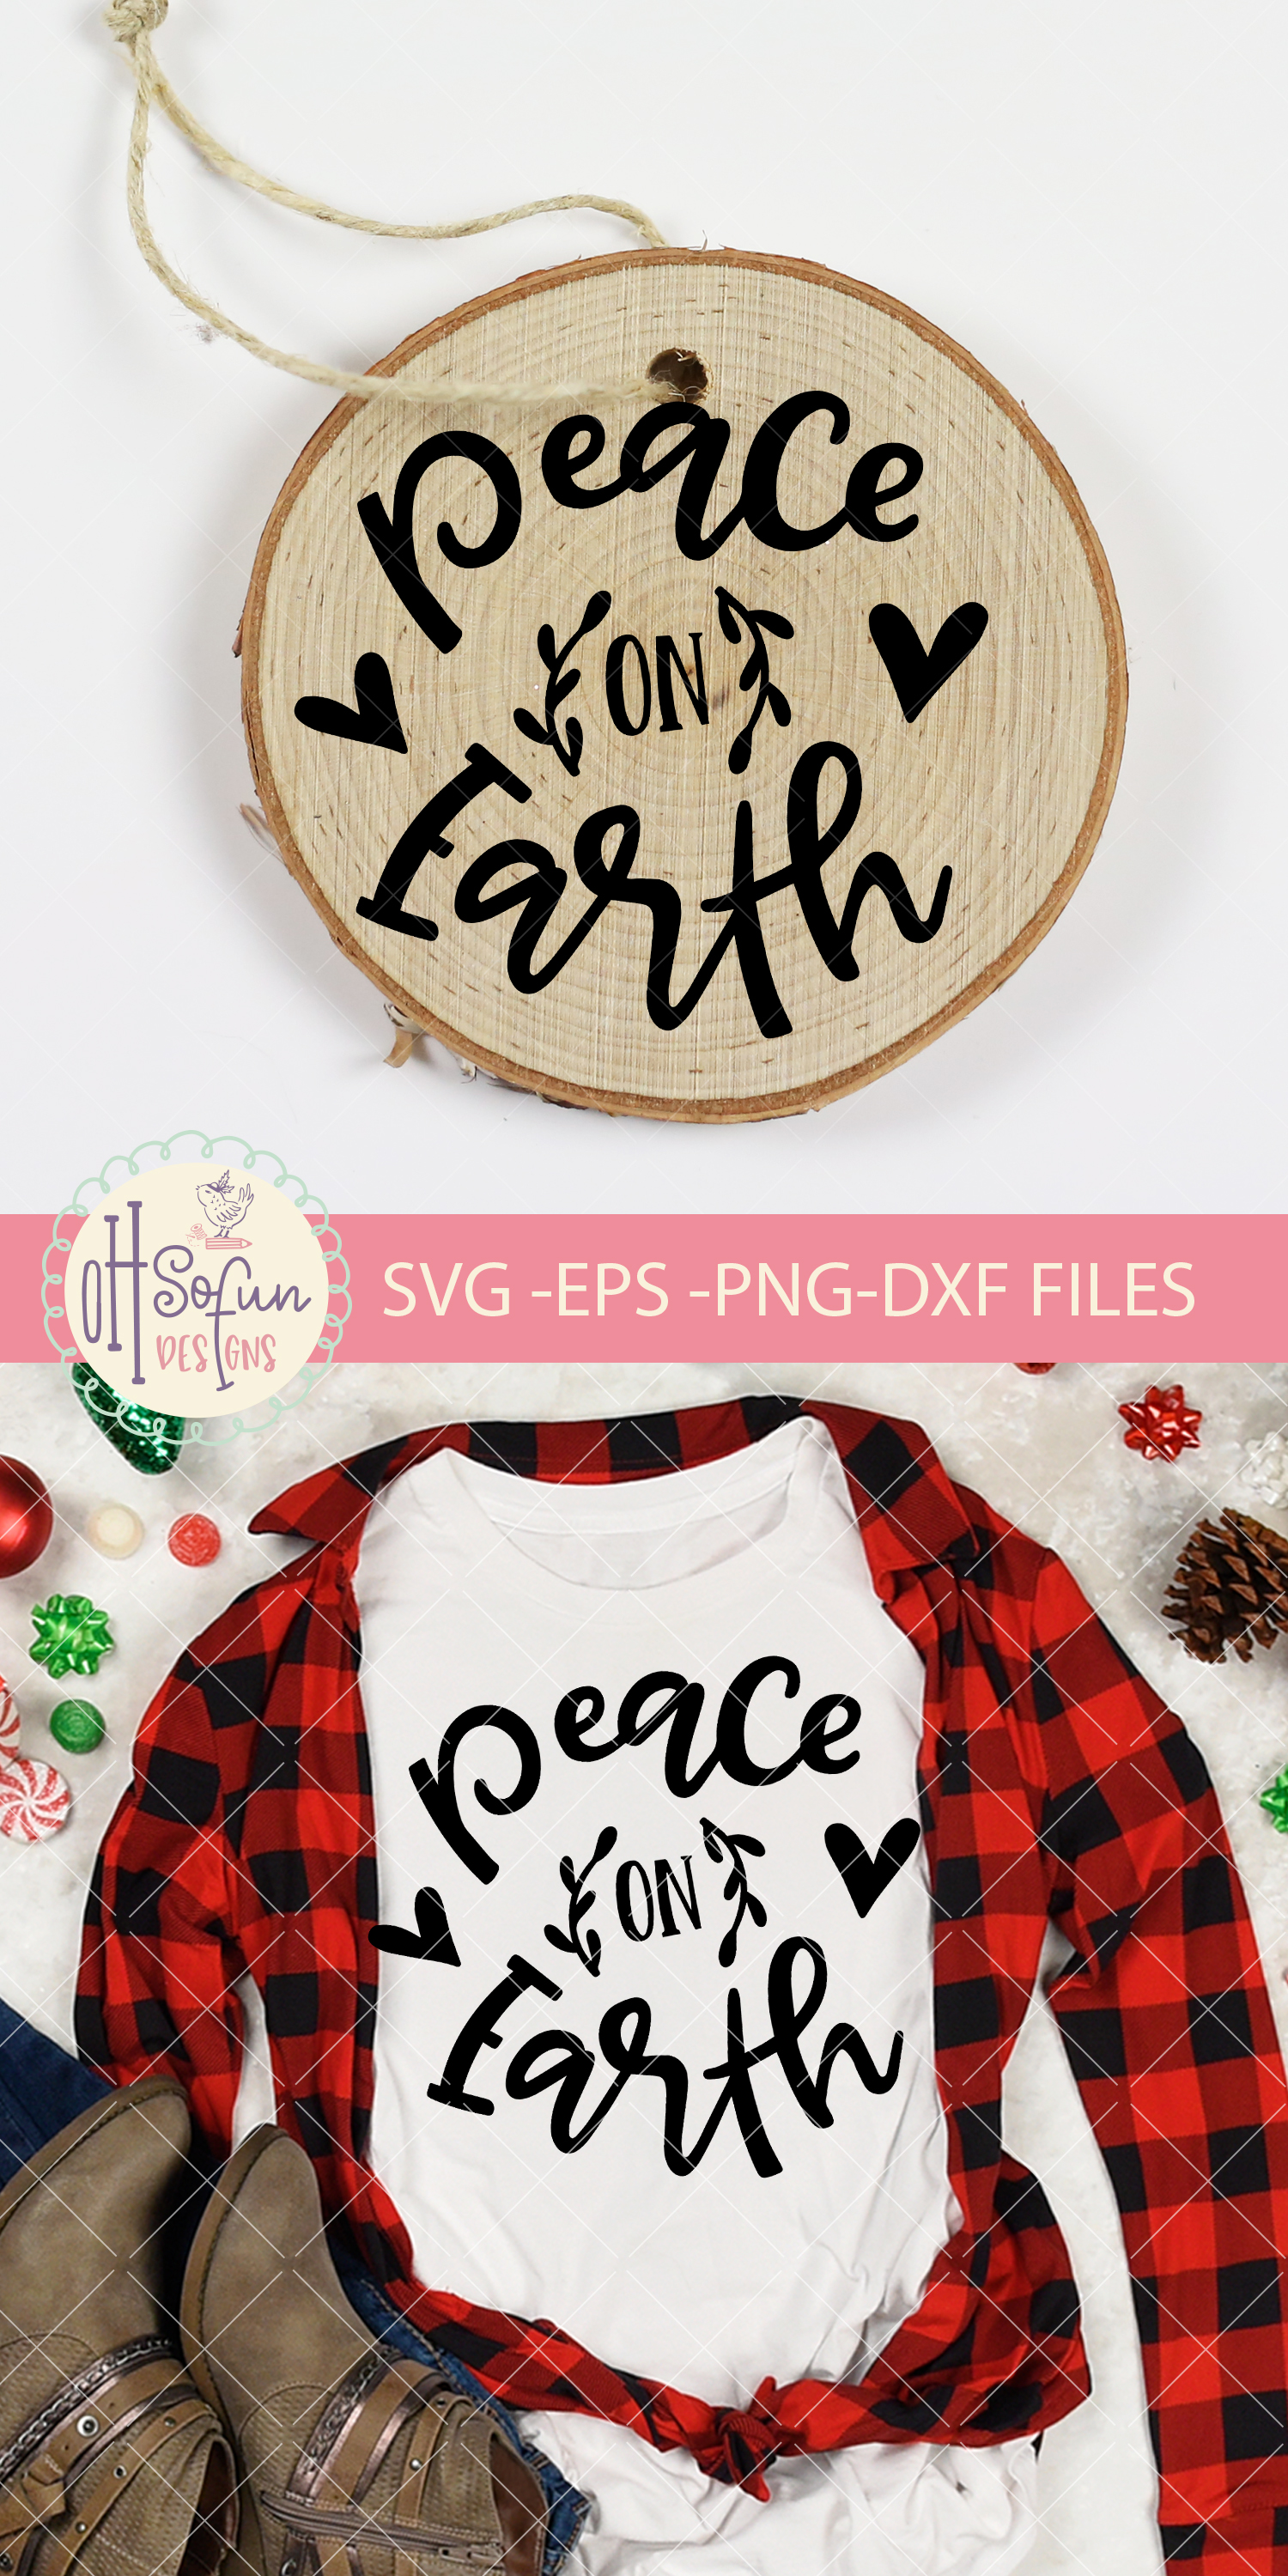 Peace on earth, hand lettering Christmas ornament SVG example image 2